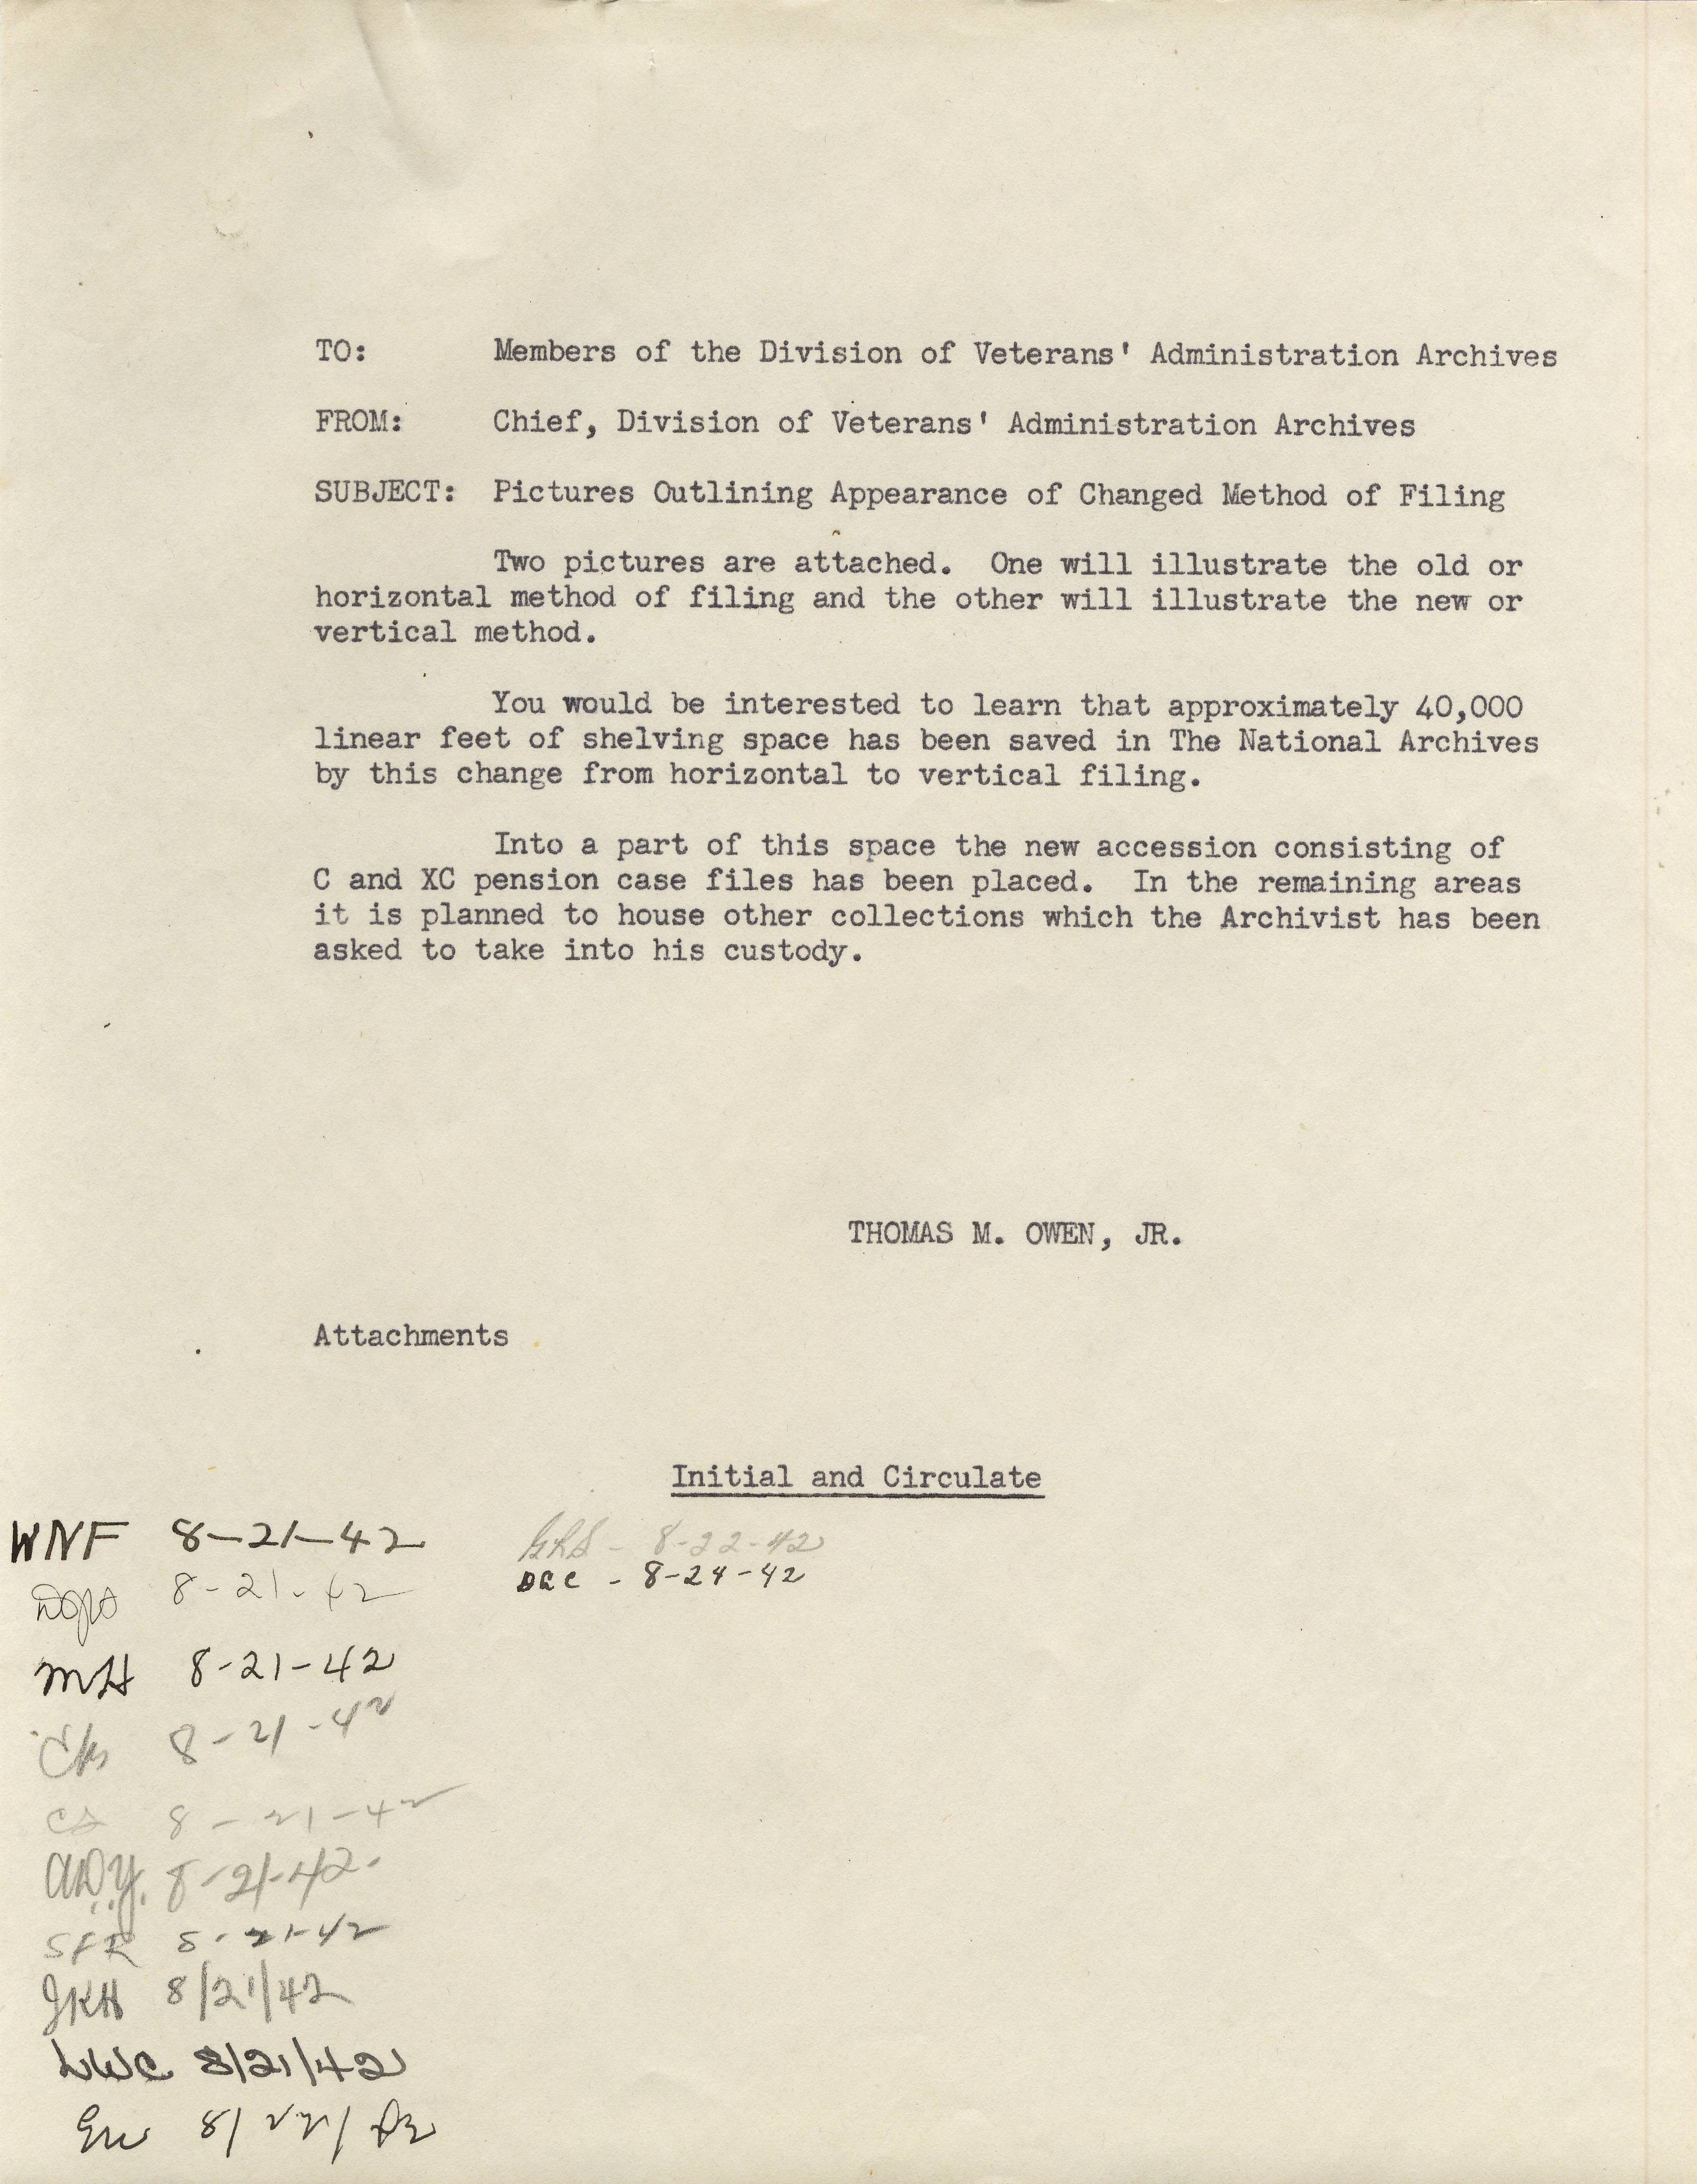 RG 64, P 112, file Records - Preservation - Flat Filing - Memo to Staff re Change to Vertical Filing.jpg